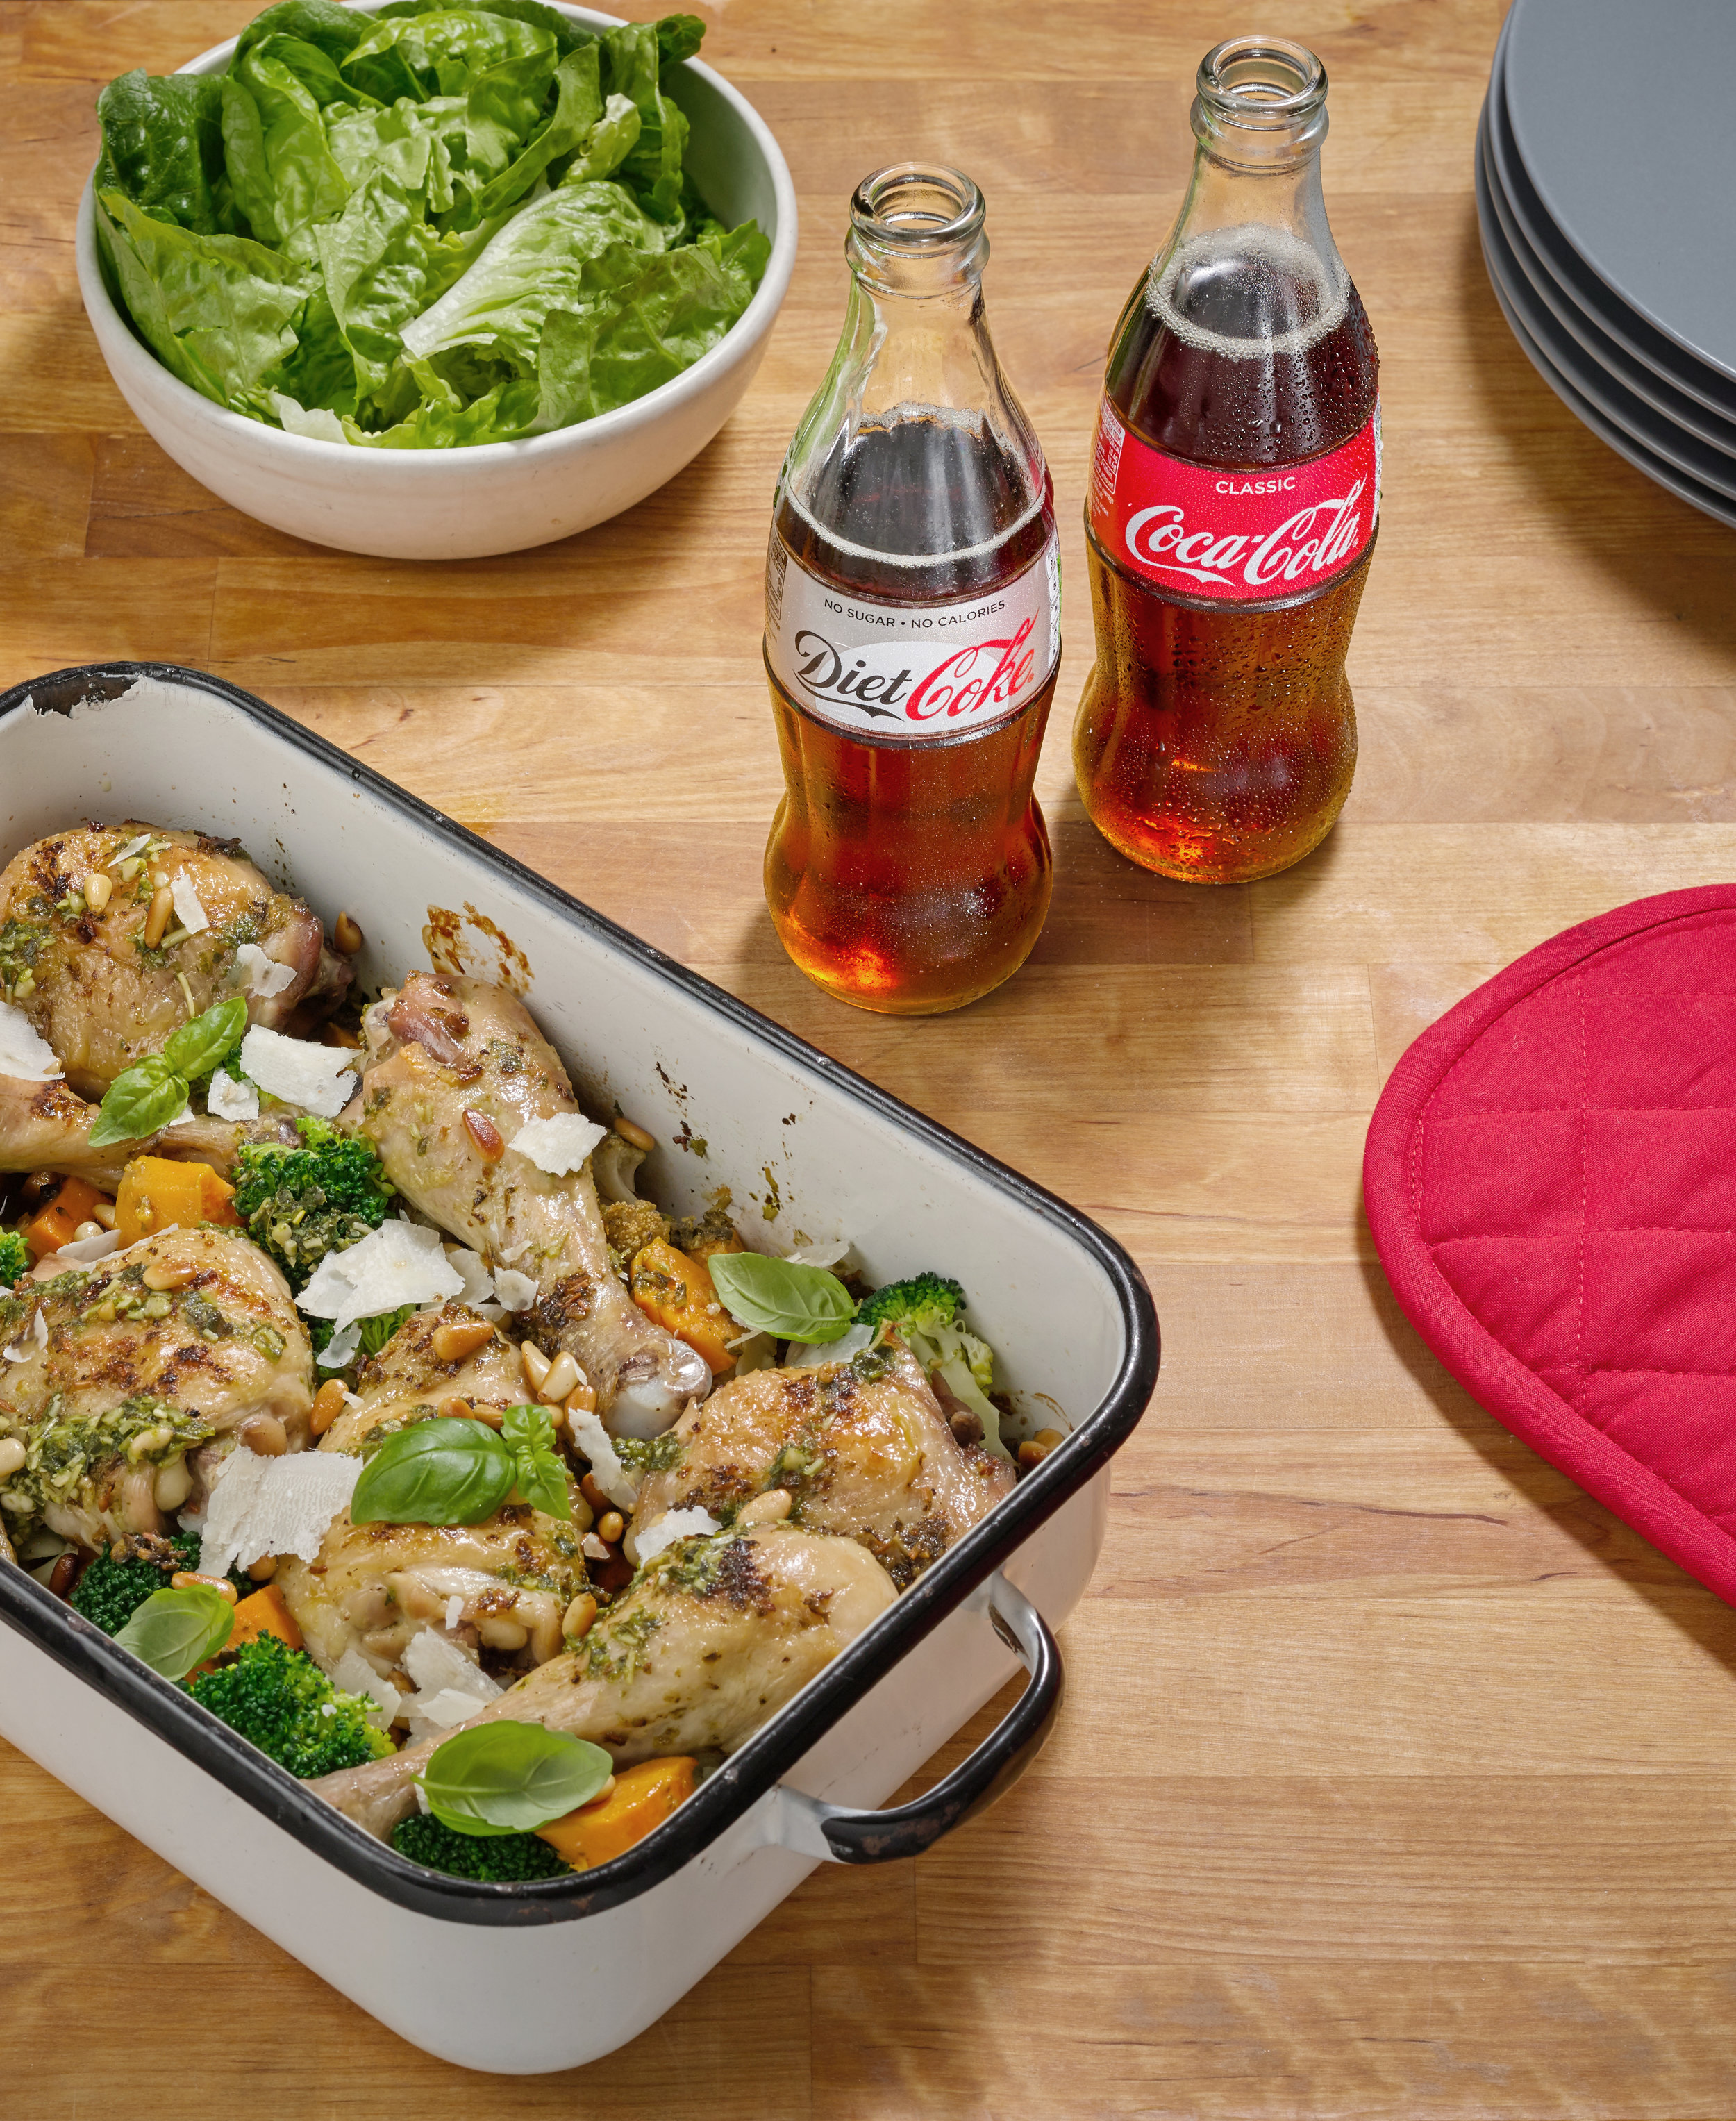 Chicken bake accompany 2 bottles of coke product. Typical food adveetising still photograph with props creativly placed around drink